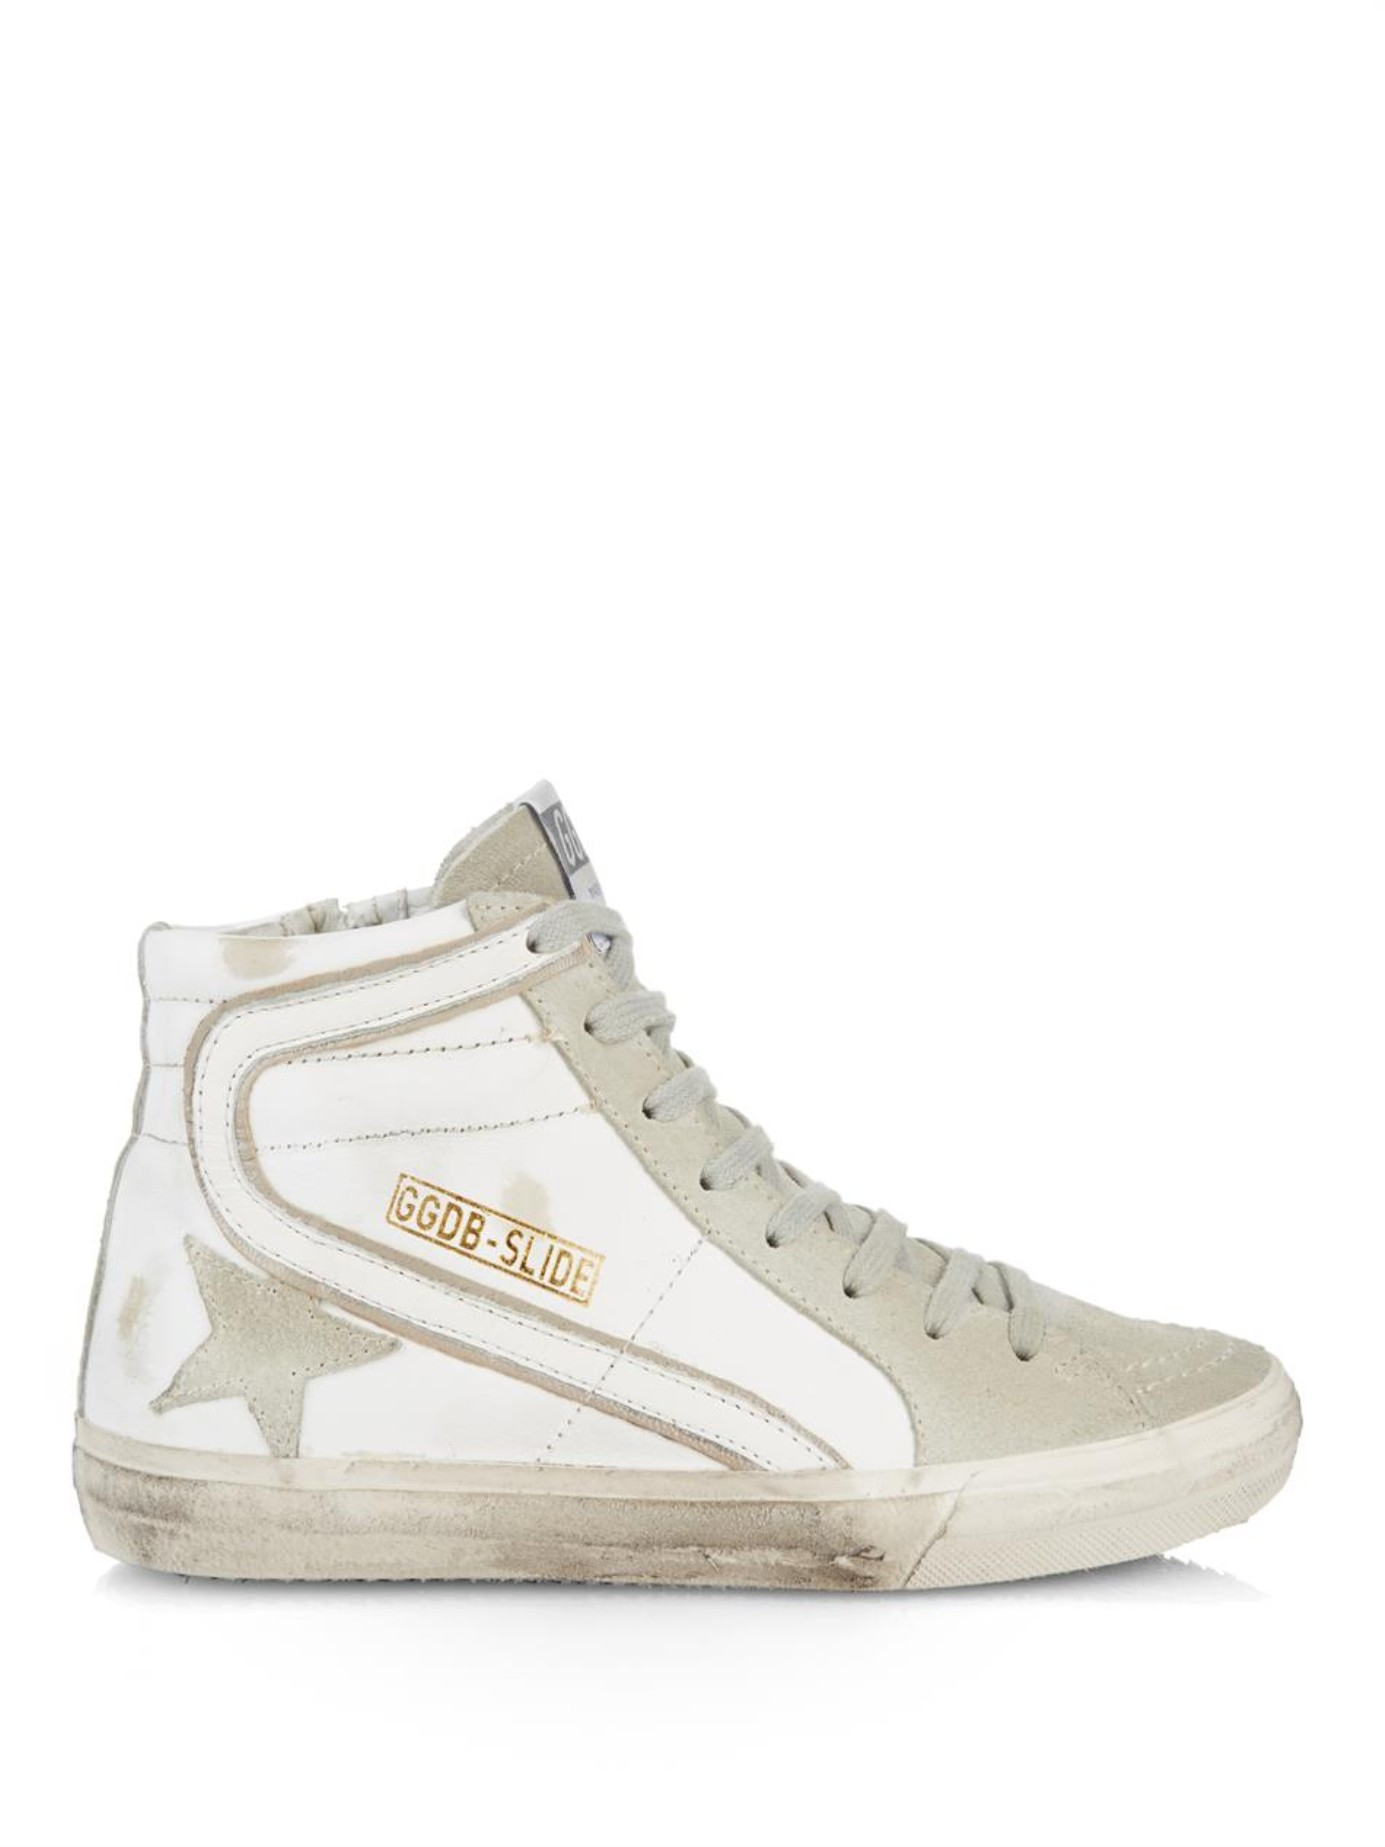 Sale - Slide Suede Trainers with Zip - Golden Goose Deluxe Brand Golden Goose Zp7zr4i